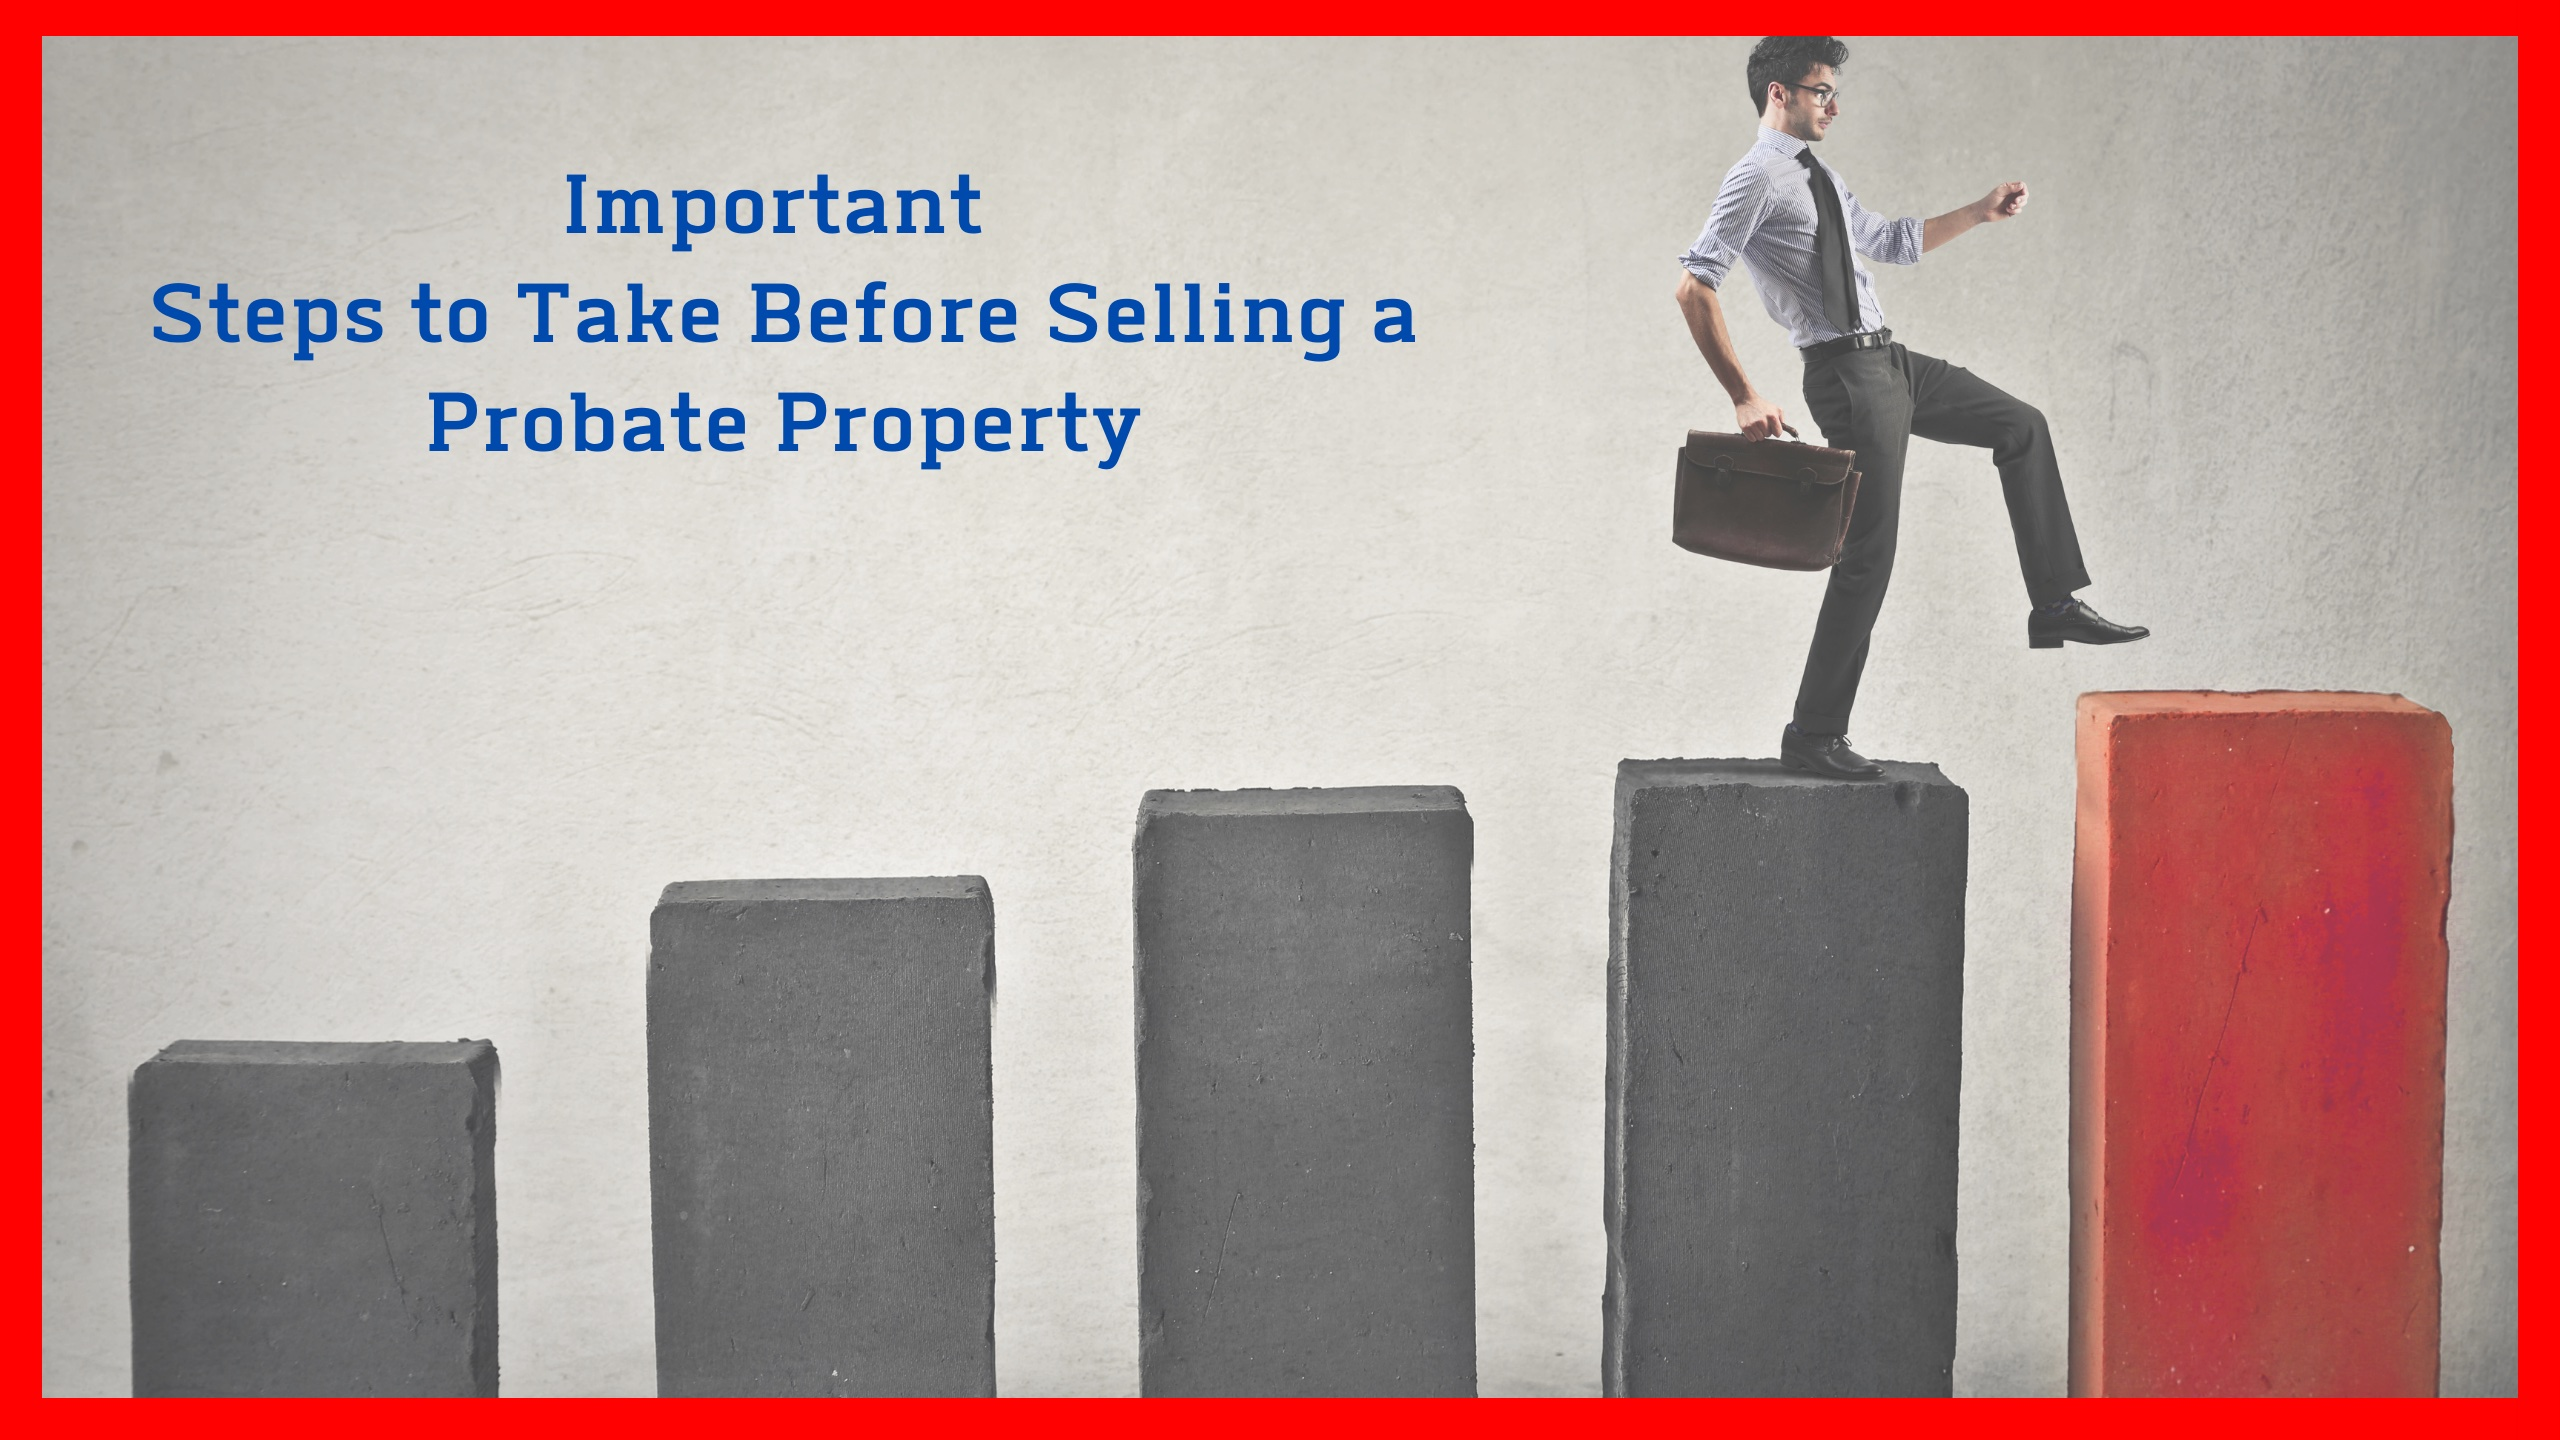 Important Steps to Take Before Selling a Probate Property